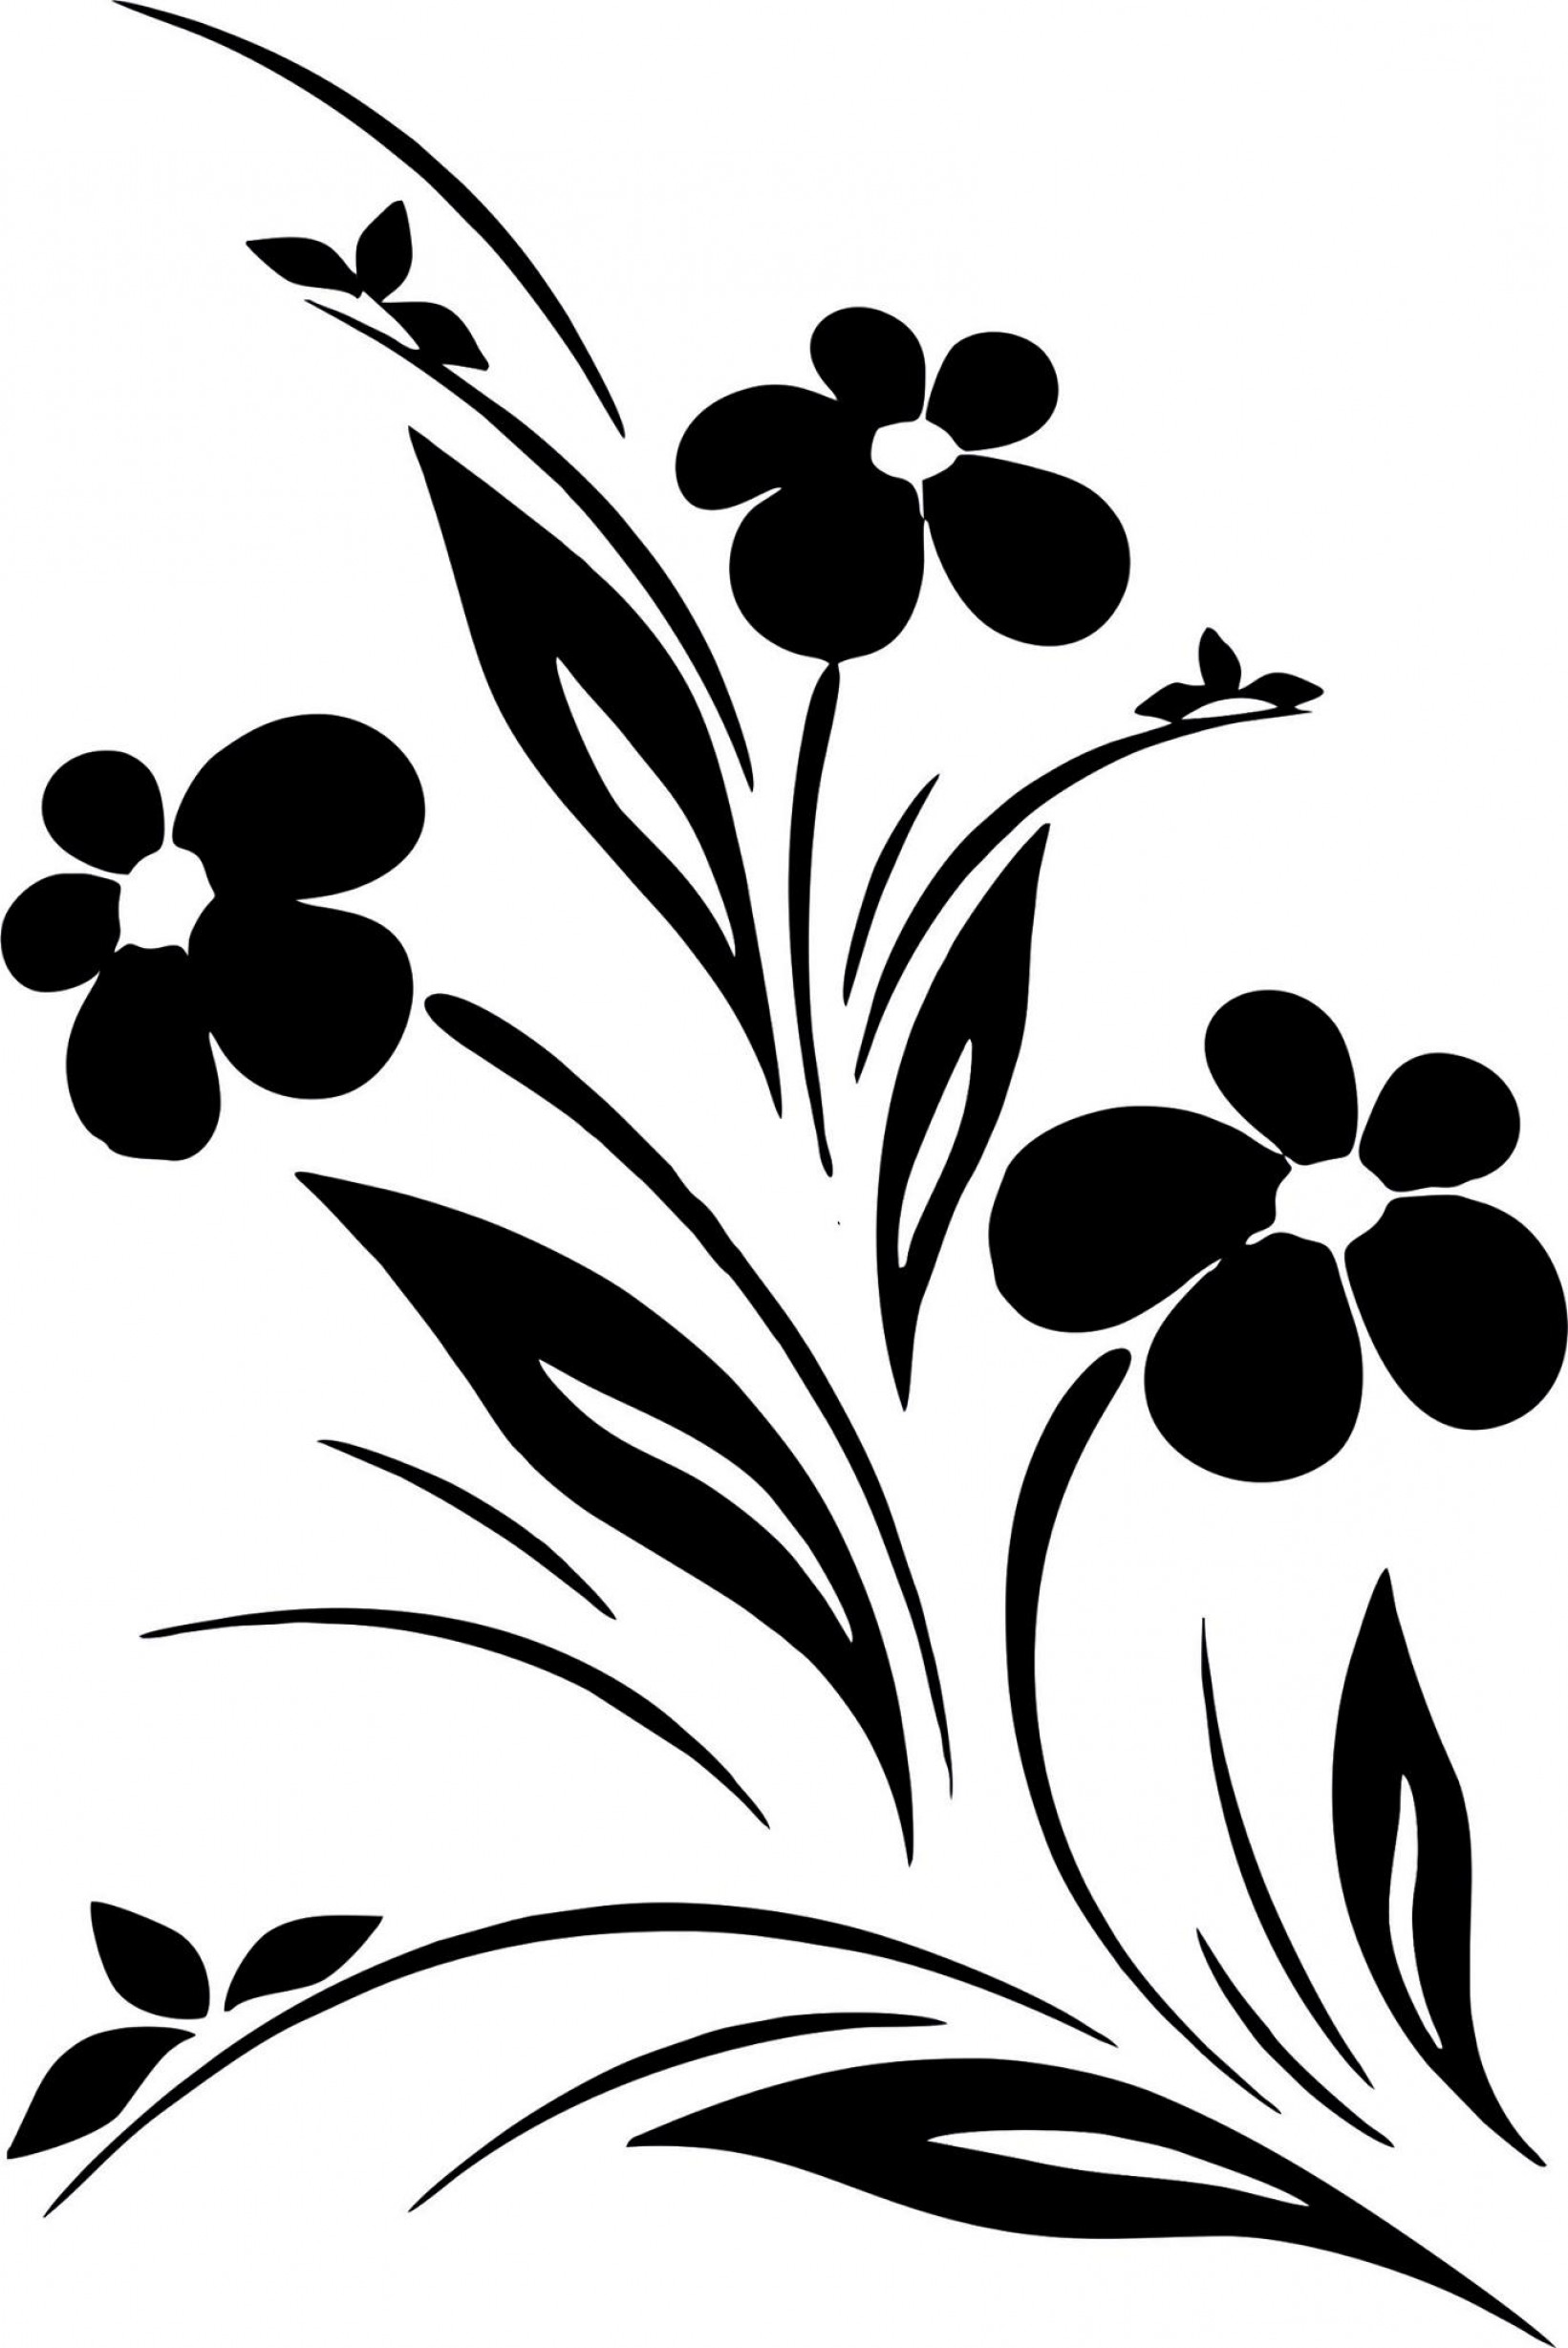 Vector clipart black and white clipart black and white stock Simple Flower Designs Black White Vector Art Jpg | Savoyuptown clipart black and white stock